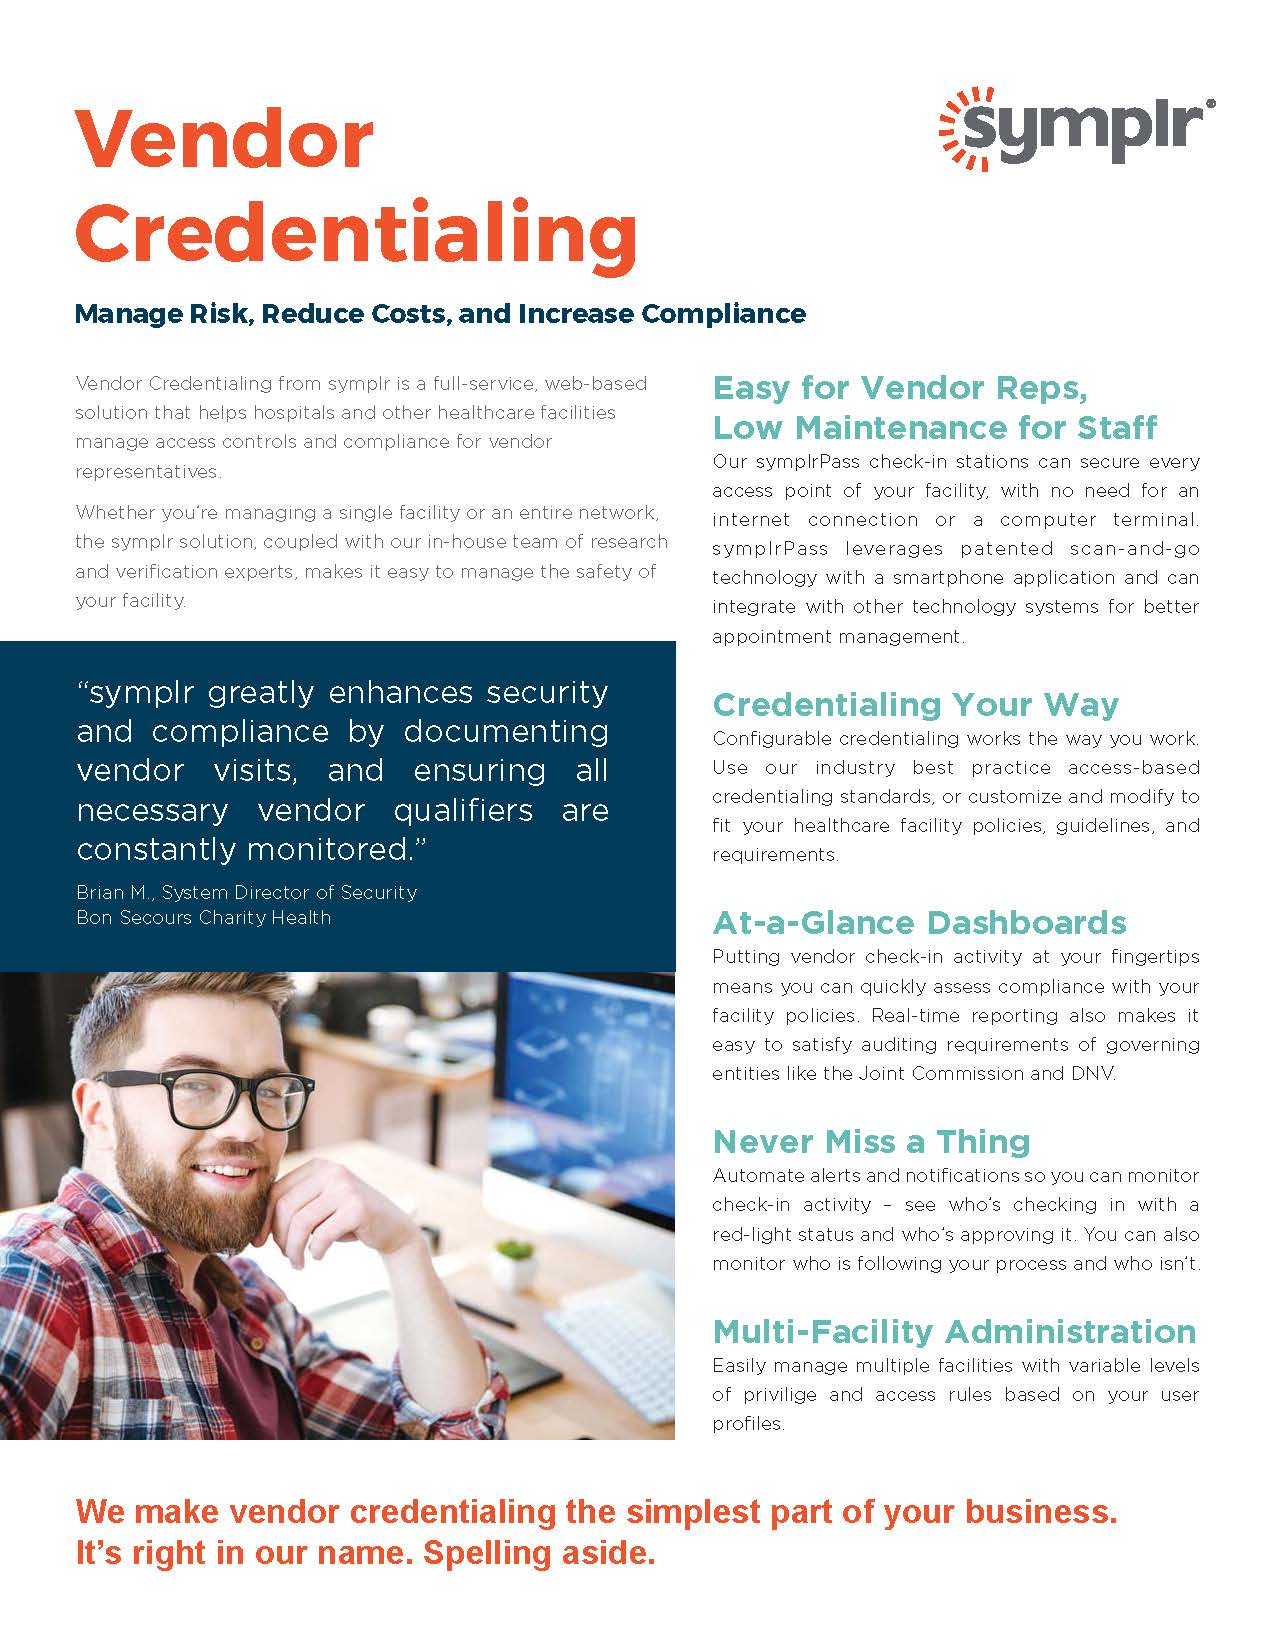 Flyer | Vendor Credentialing Services from symplr